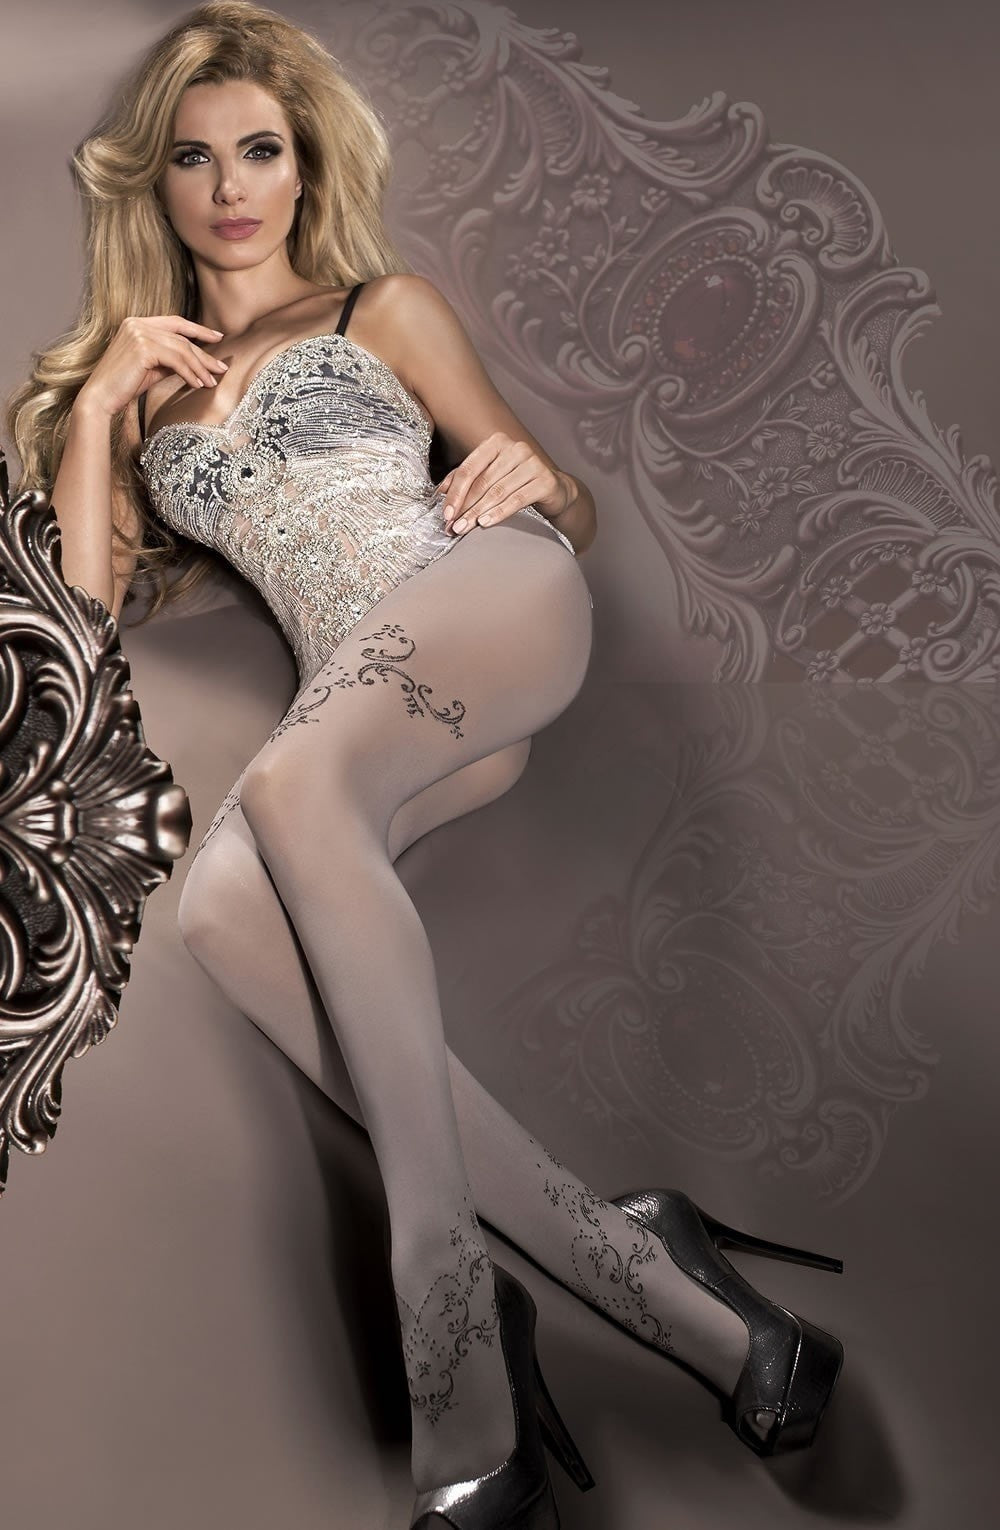 Ballerina Tights 297 (Smoke) - Tights - Ballerina - Charm and Lace Boutique